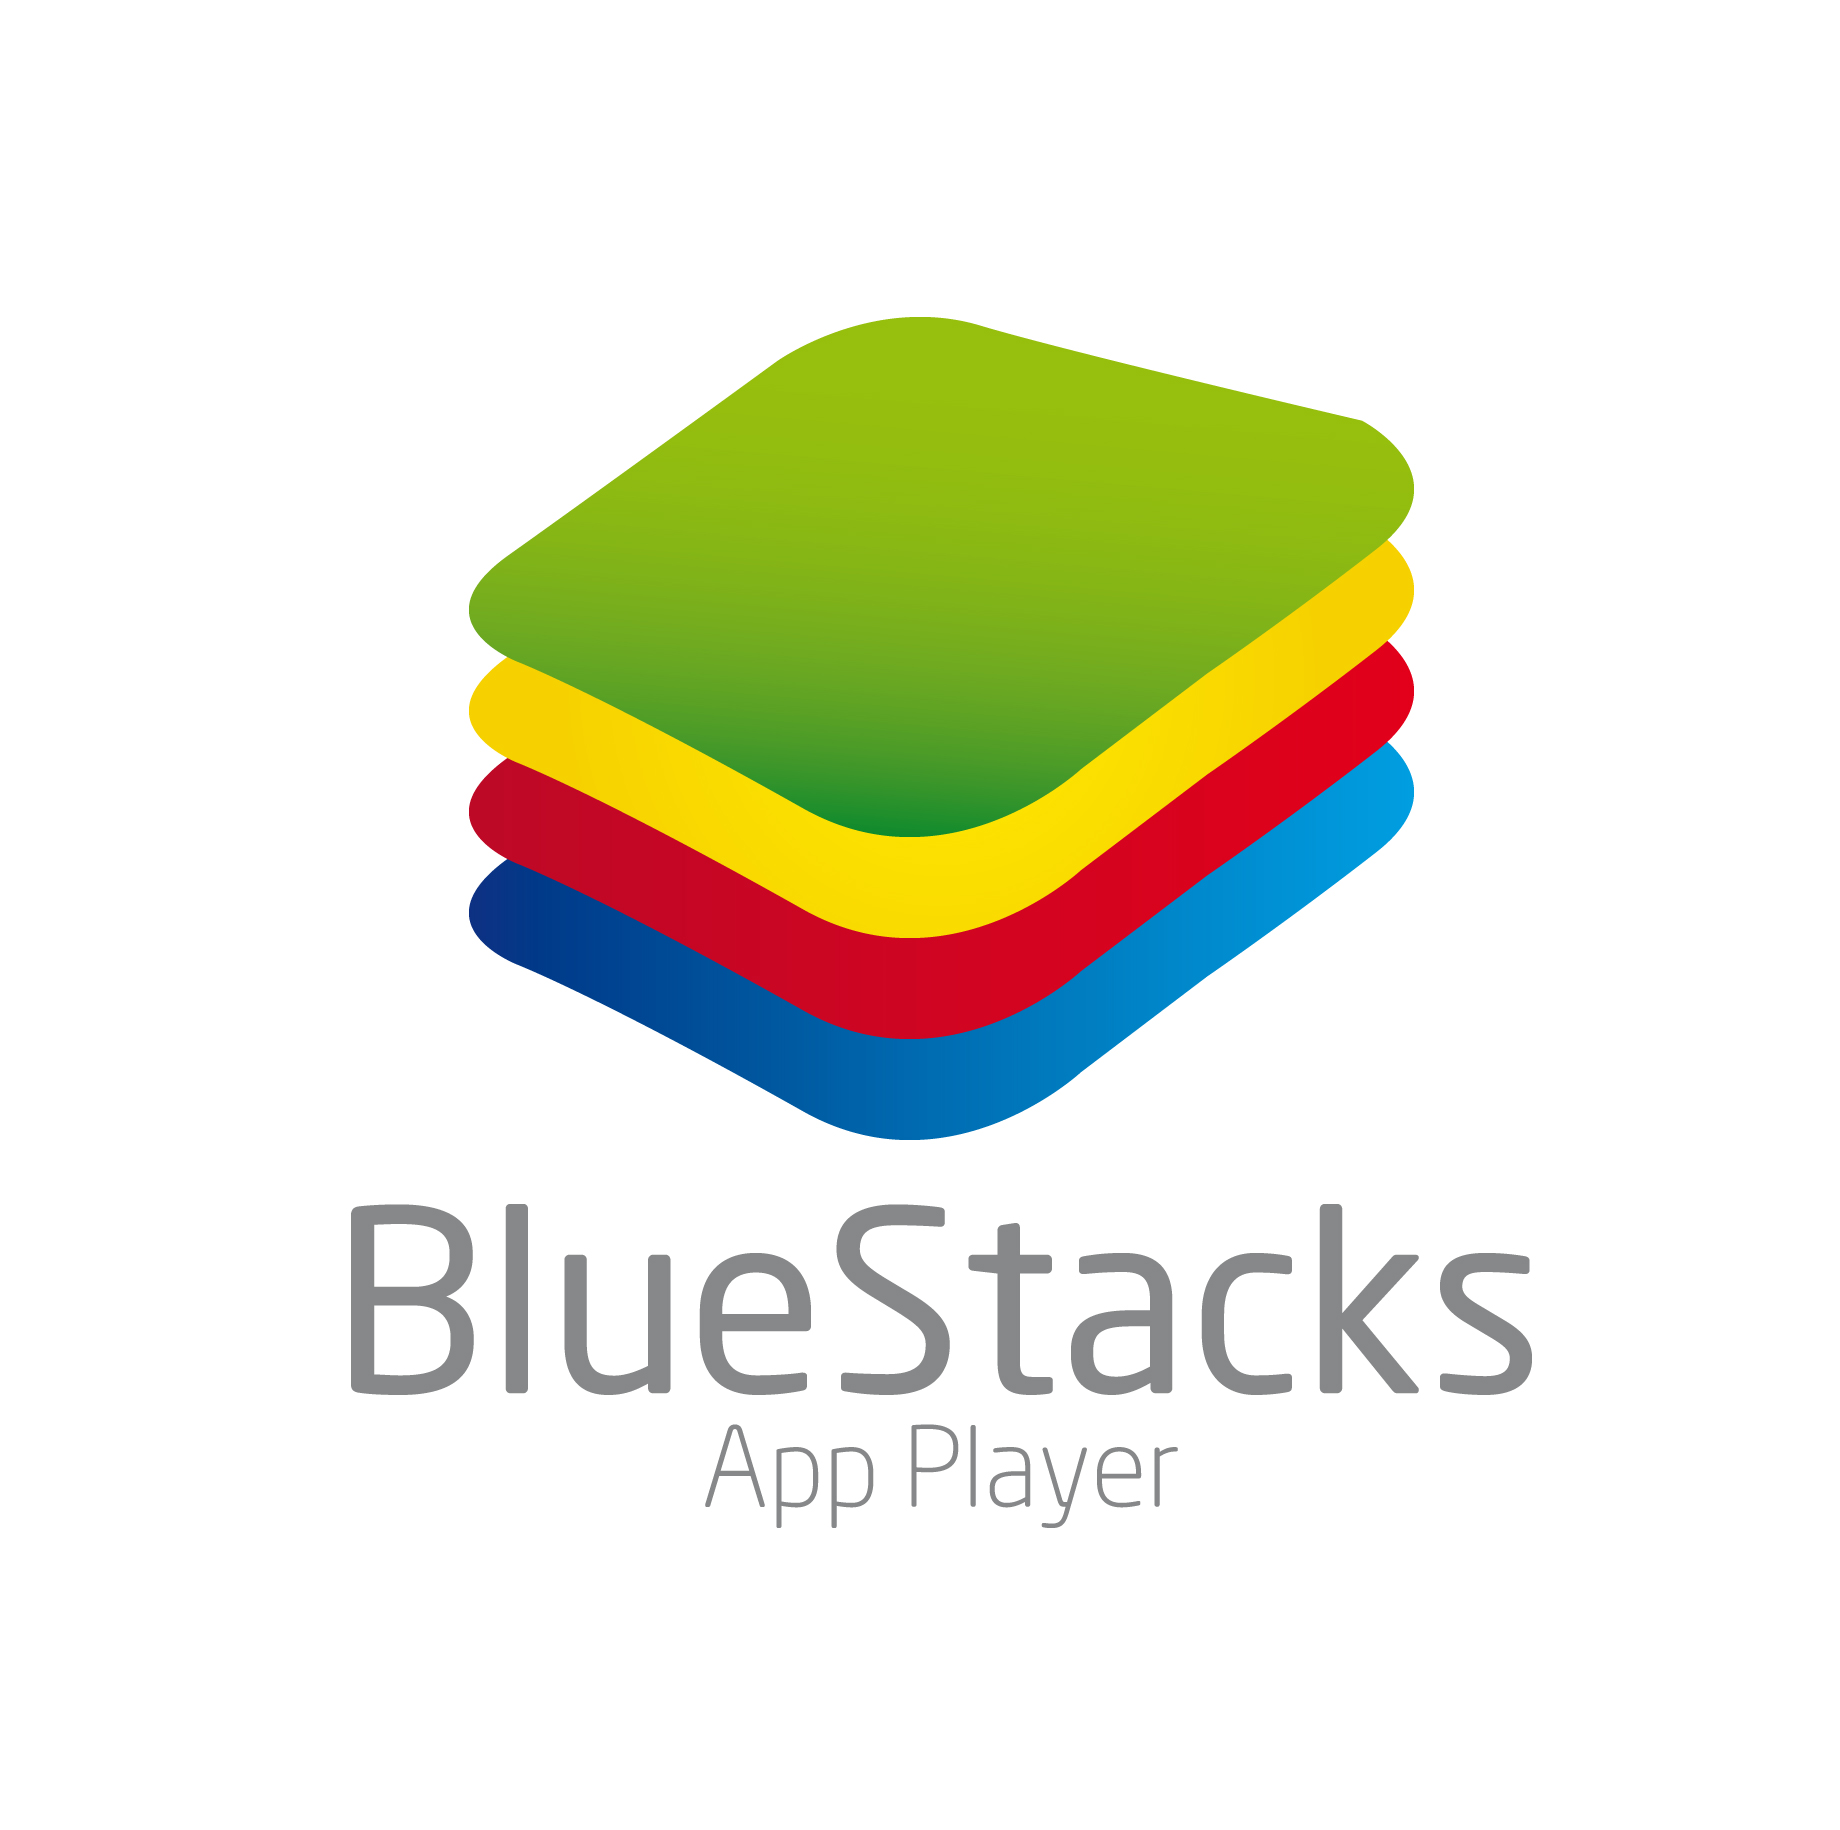 Bluestacks android app player for windows 8